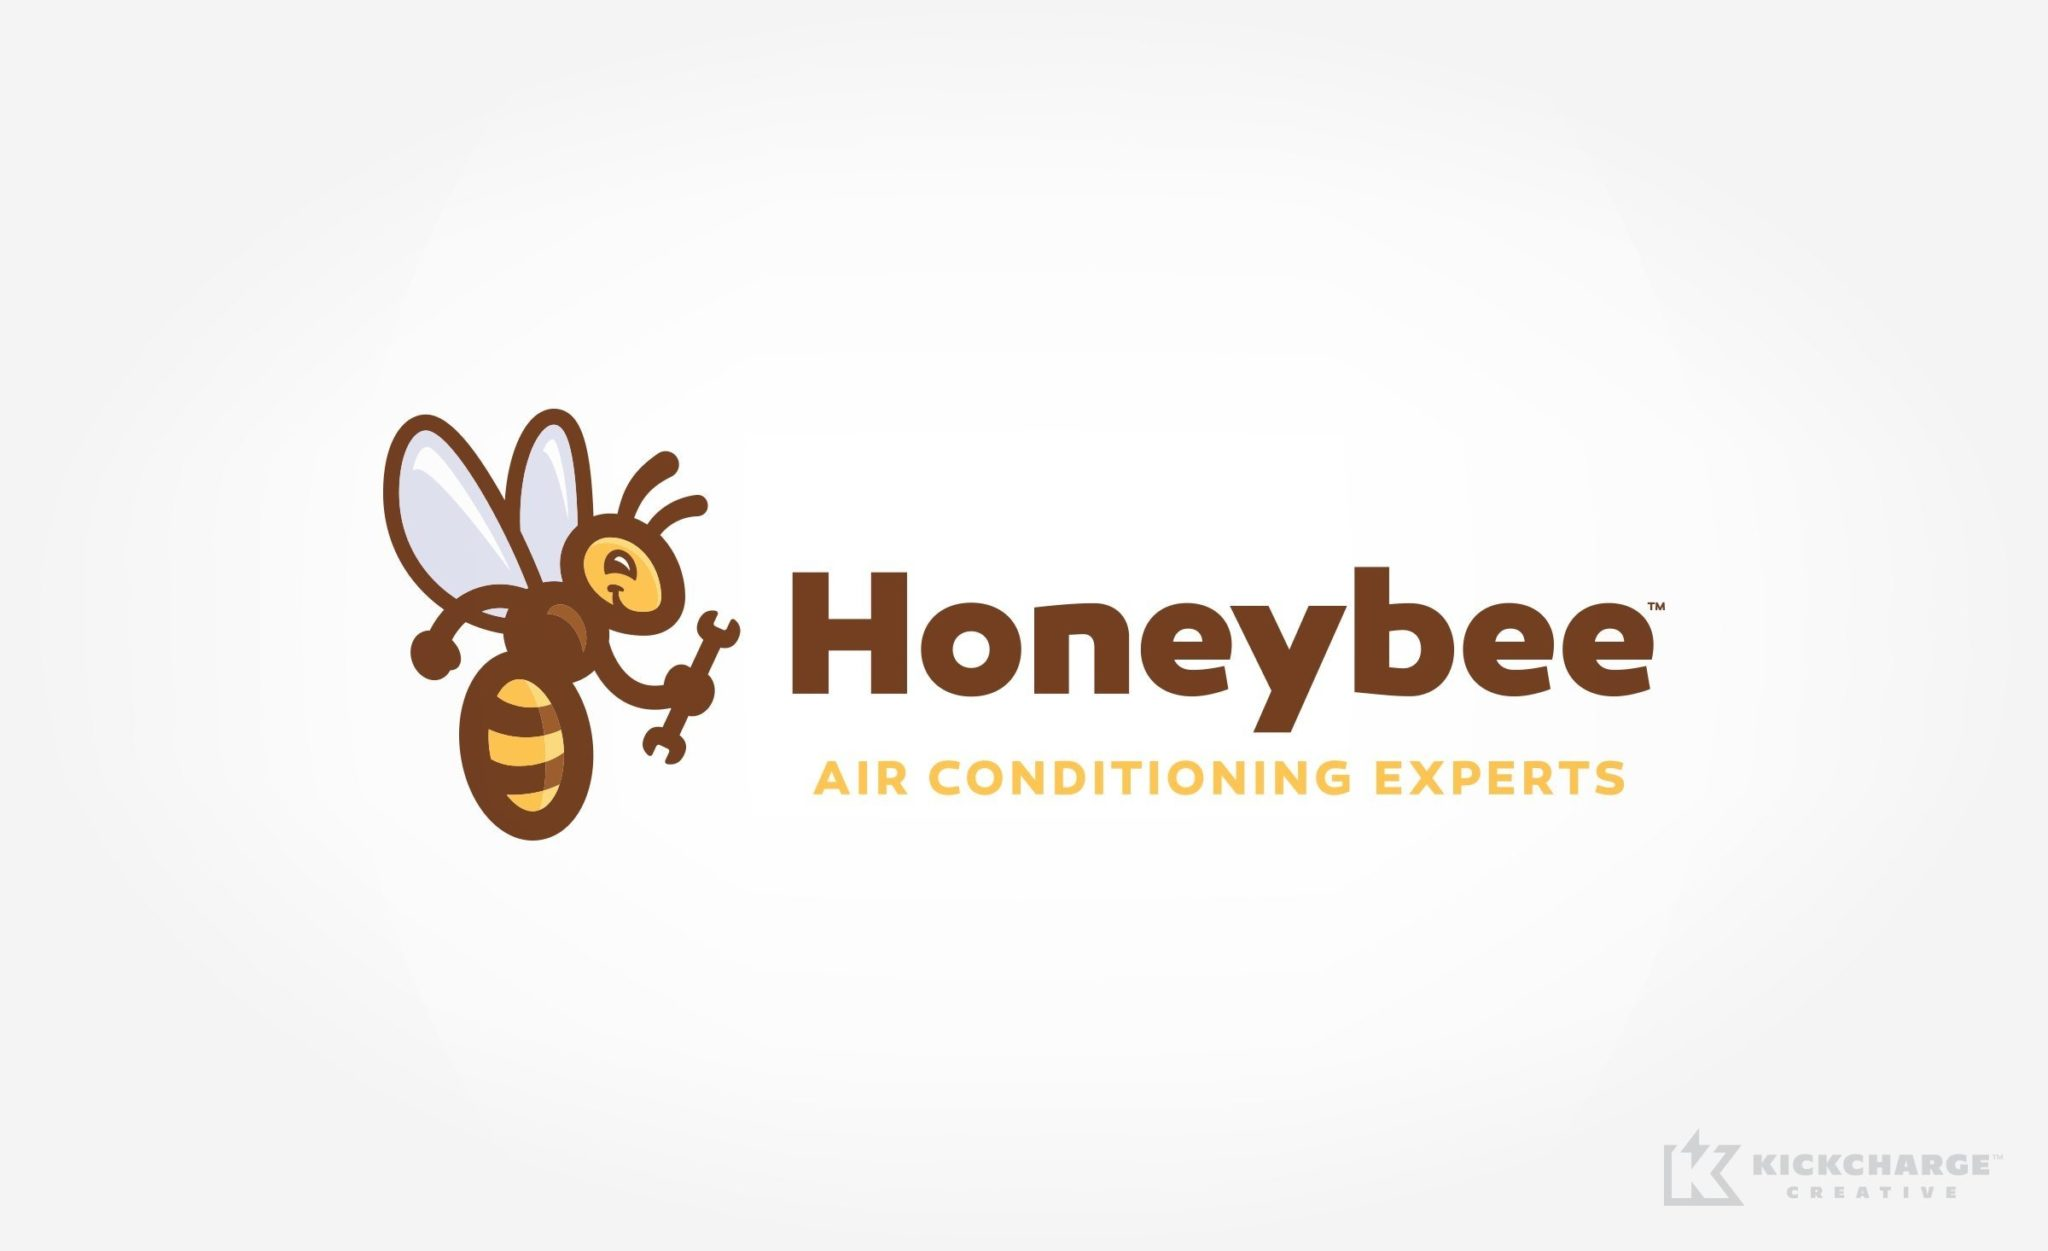 Honeybee Air Conditioning Experts